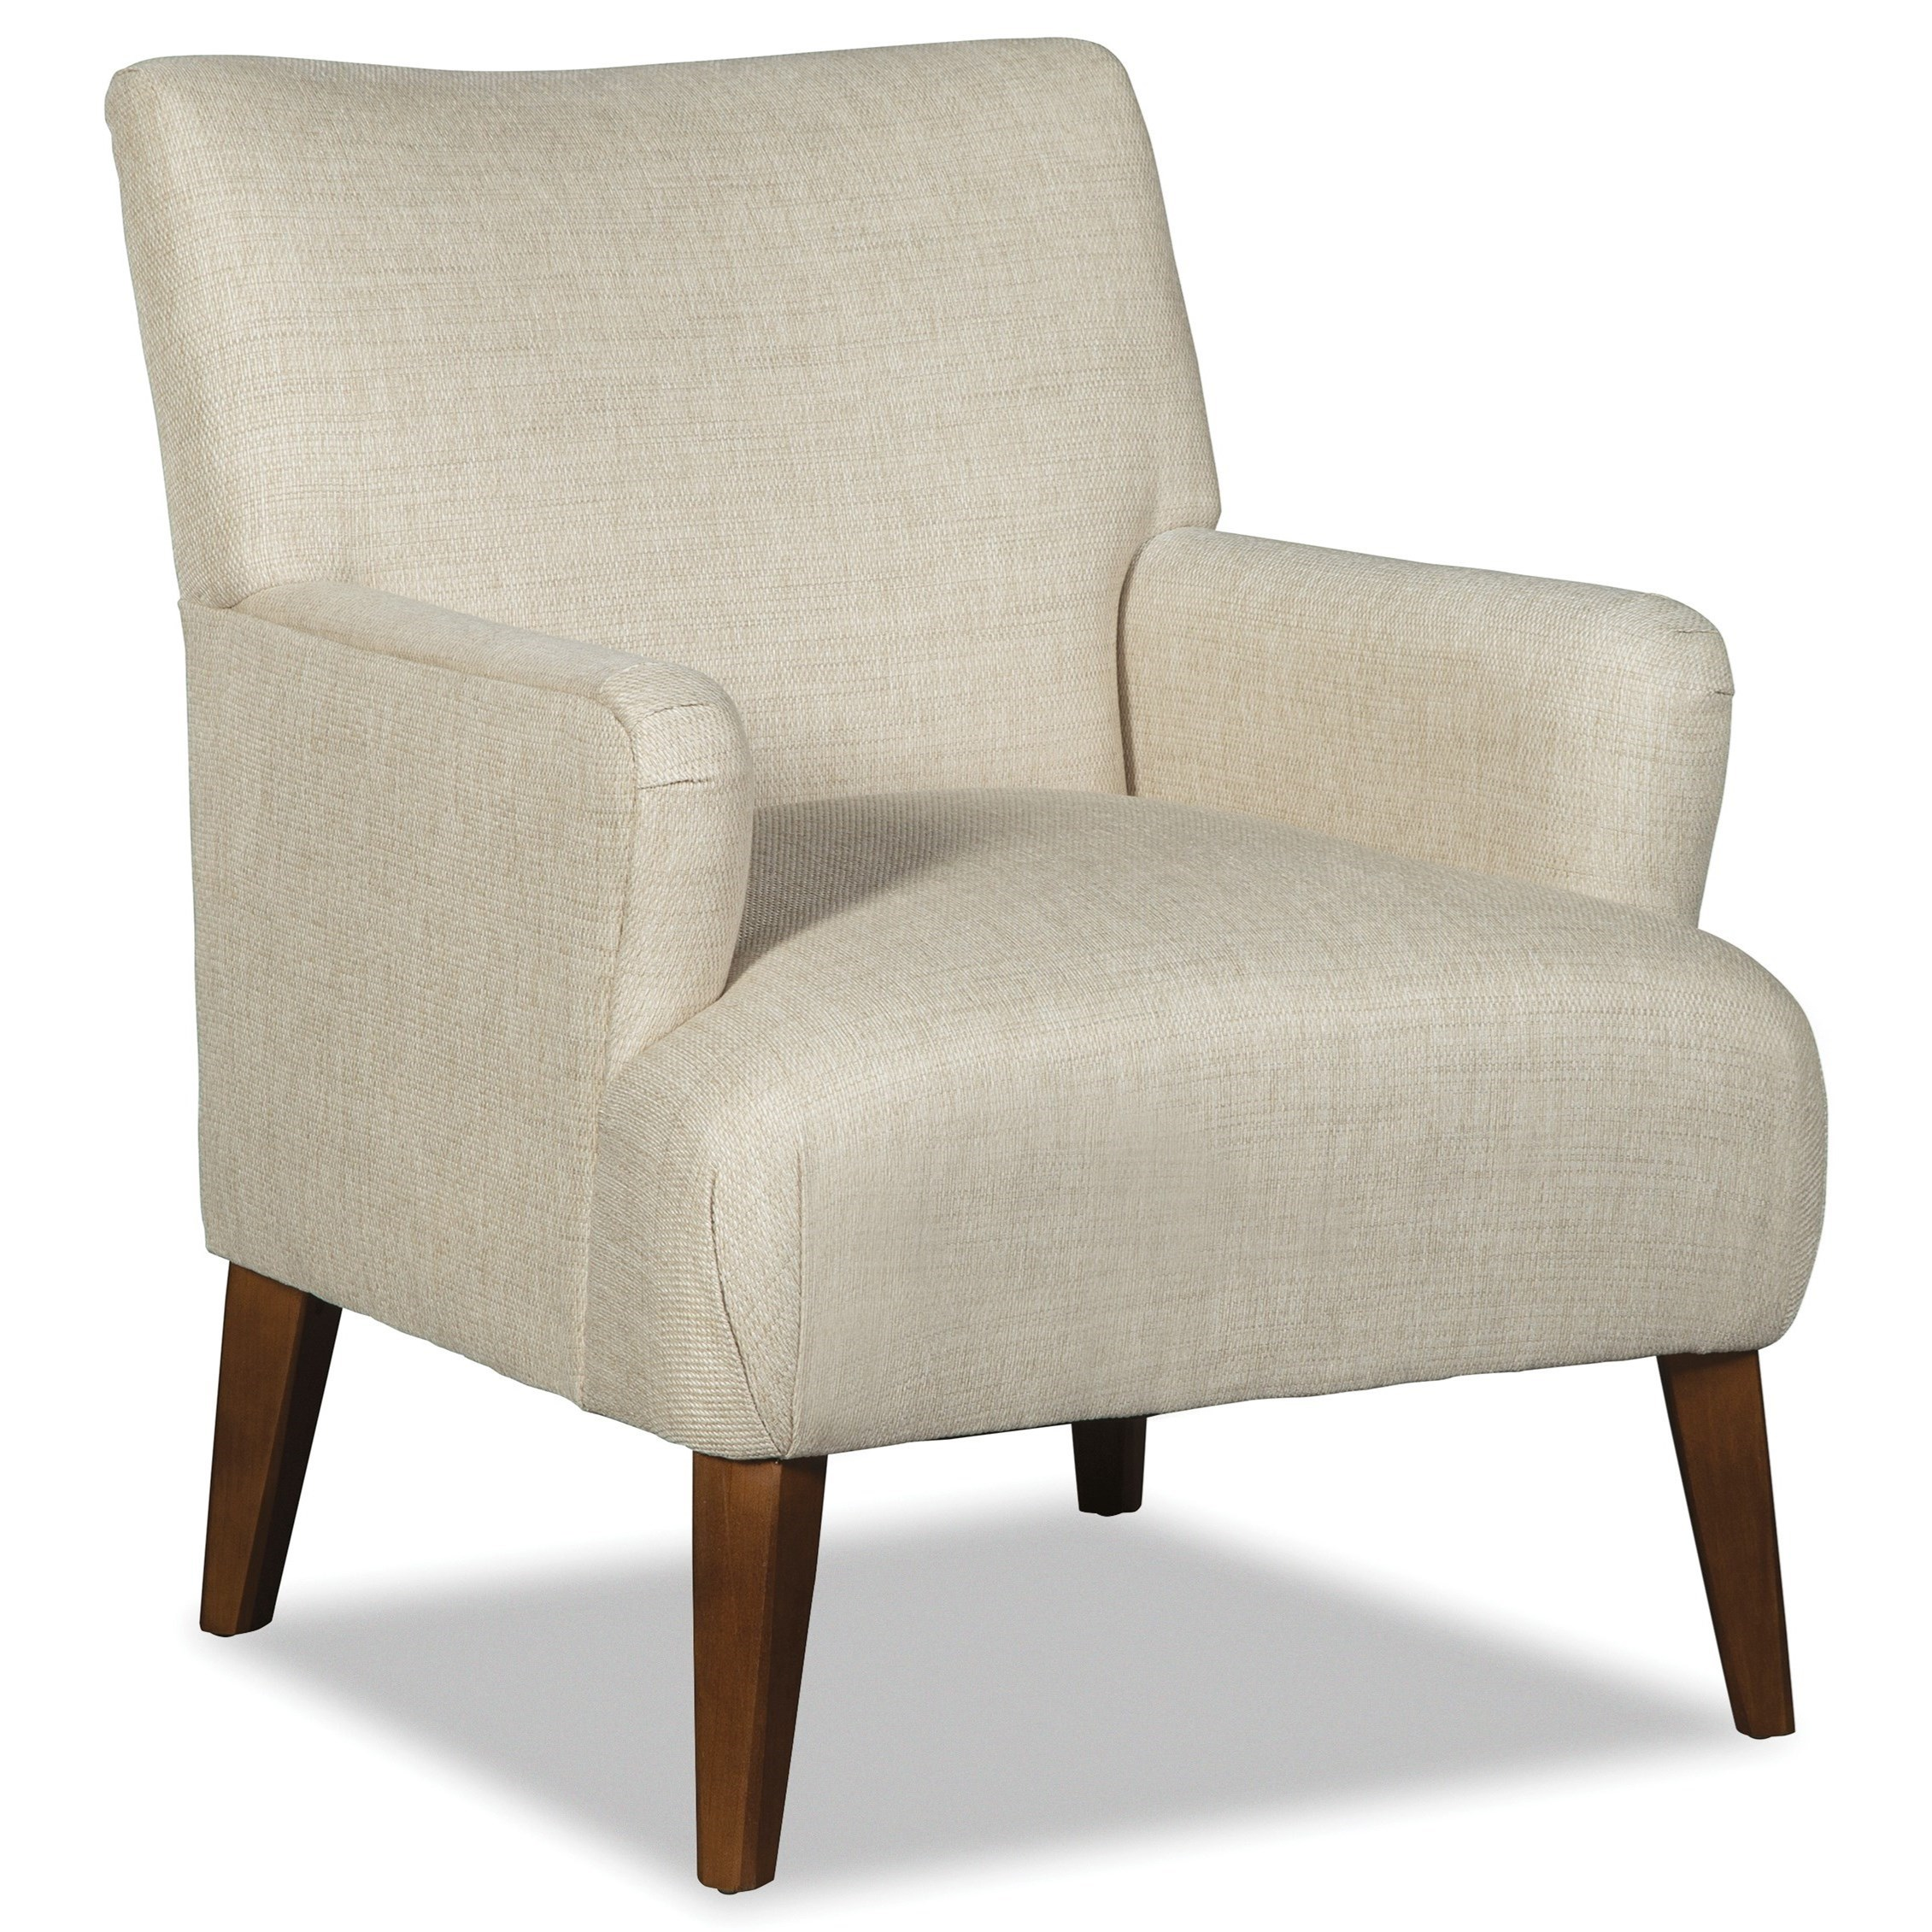 002710 Chair by Craftmaster at Story & Lee Furniture